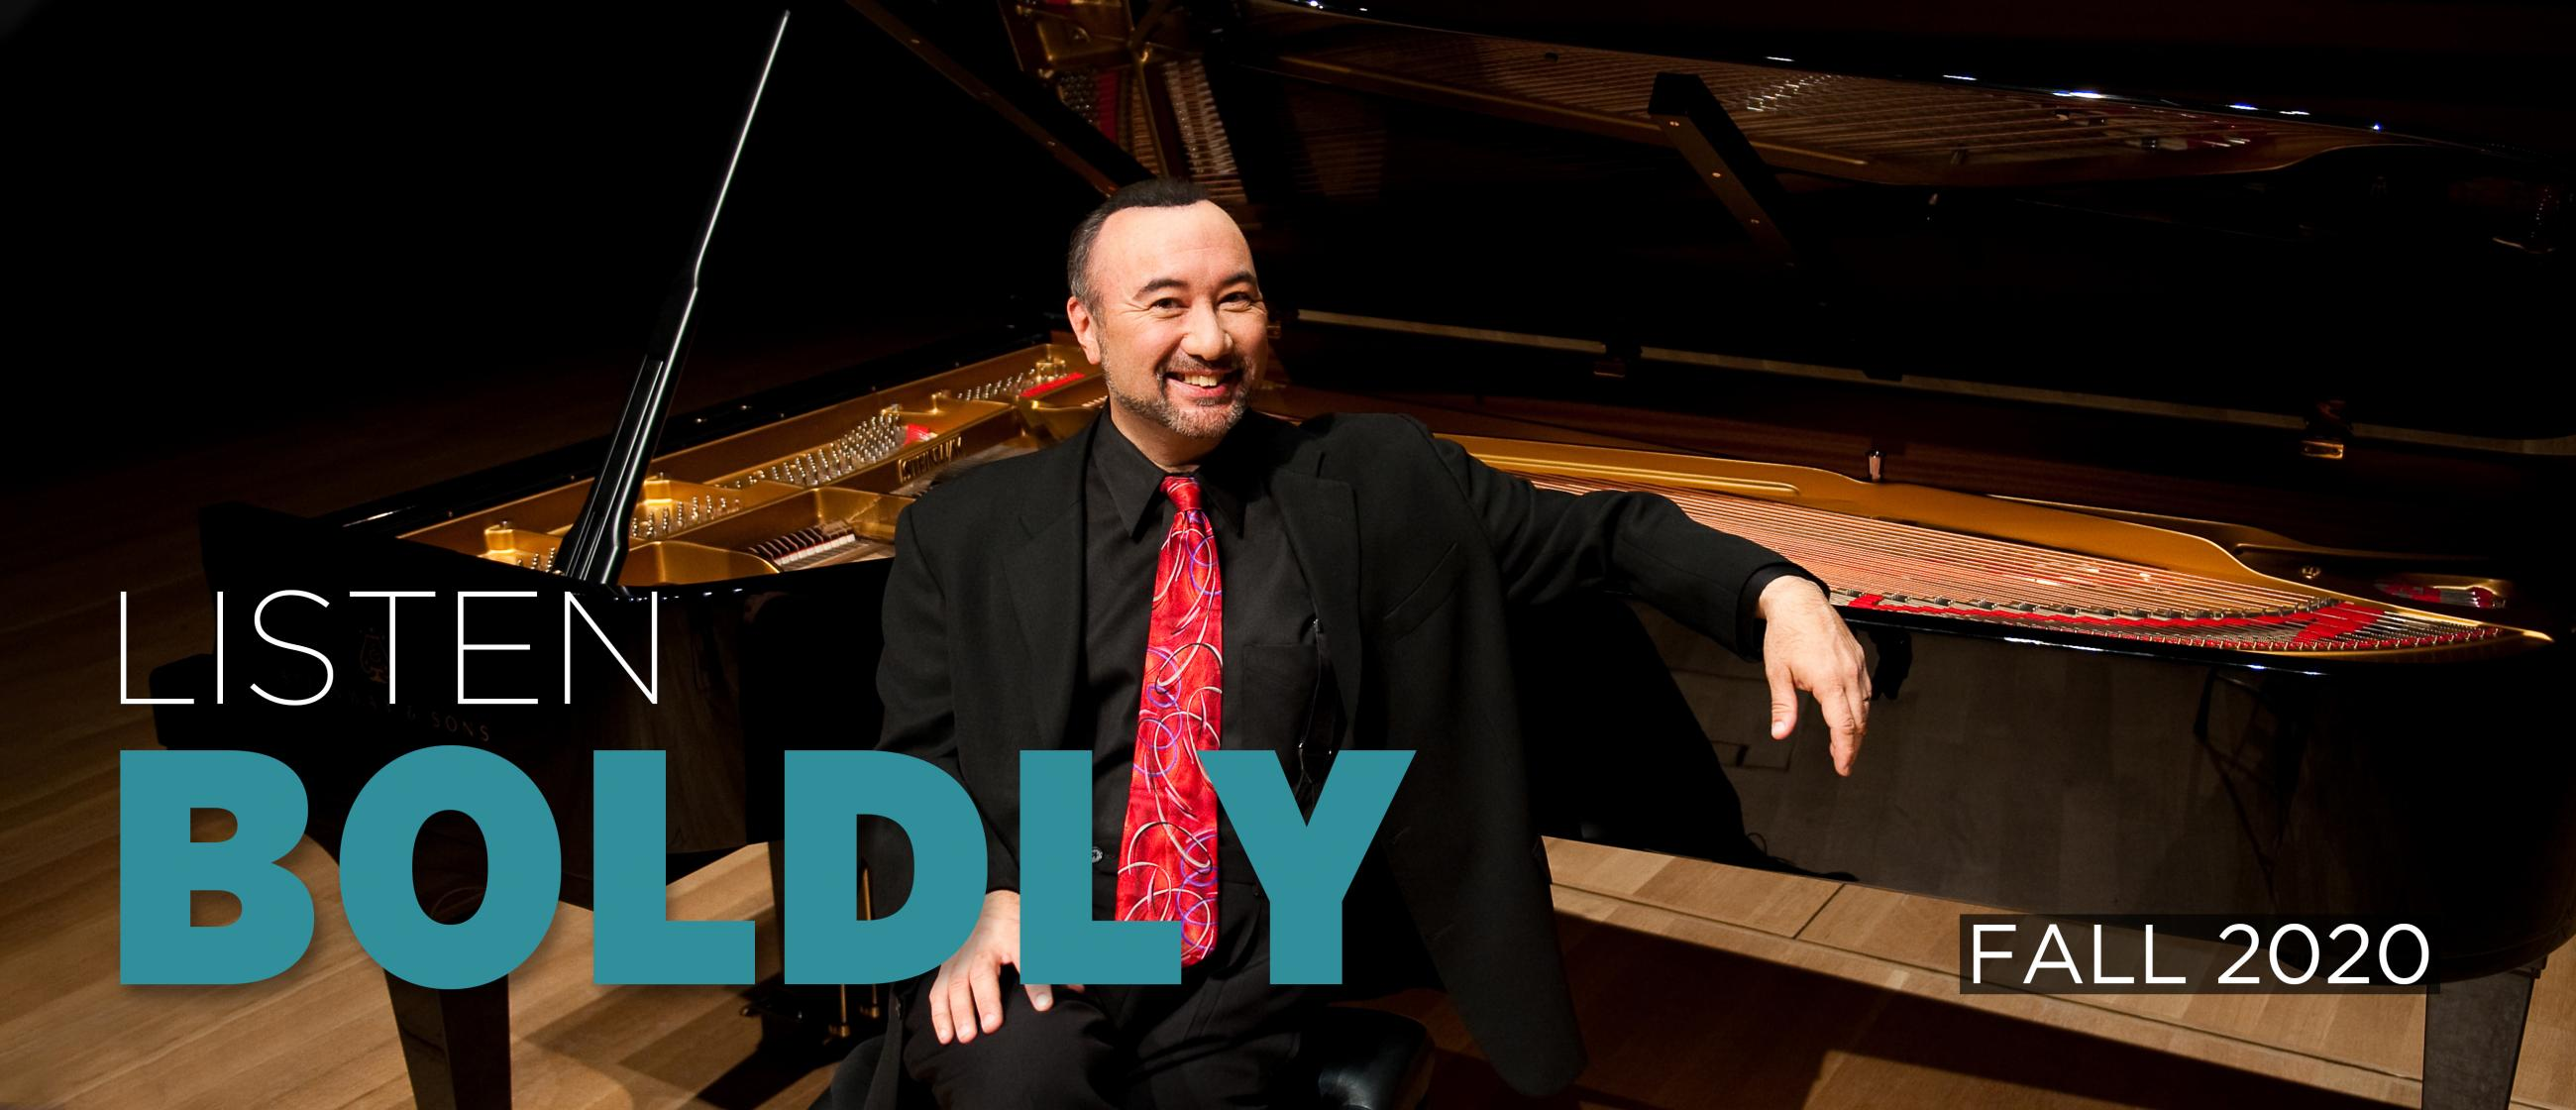 """Image of pianist Jon Kimura Parker seated in front of a piano, with text """"Listen Boldly"""" and """"Fall 2020"""""""